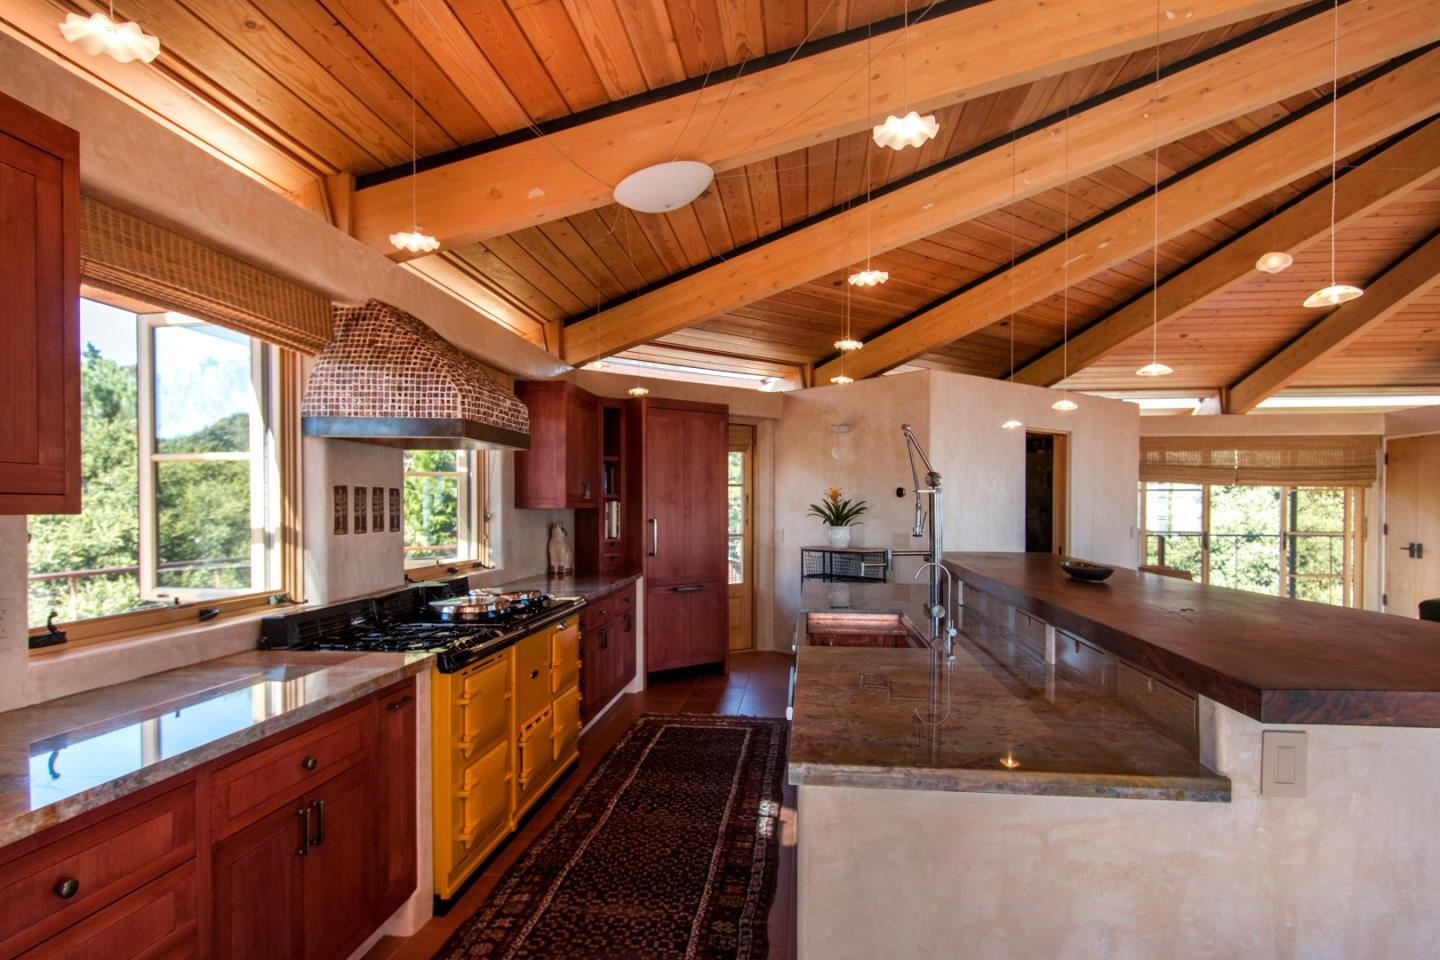 Additional photo for property listing at 520 Loma Alta Road  Carmel, Kalifornien 93923 Vereinigte Staaten